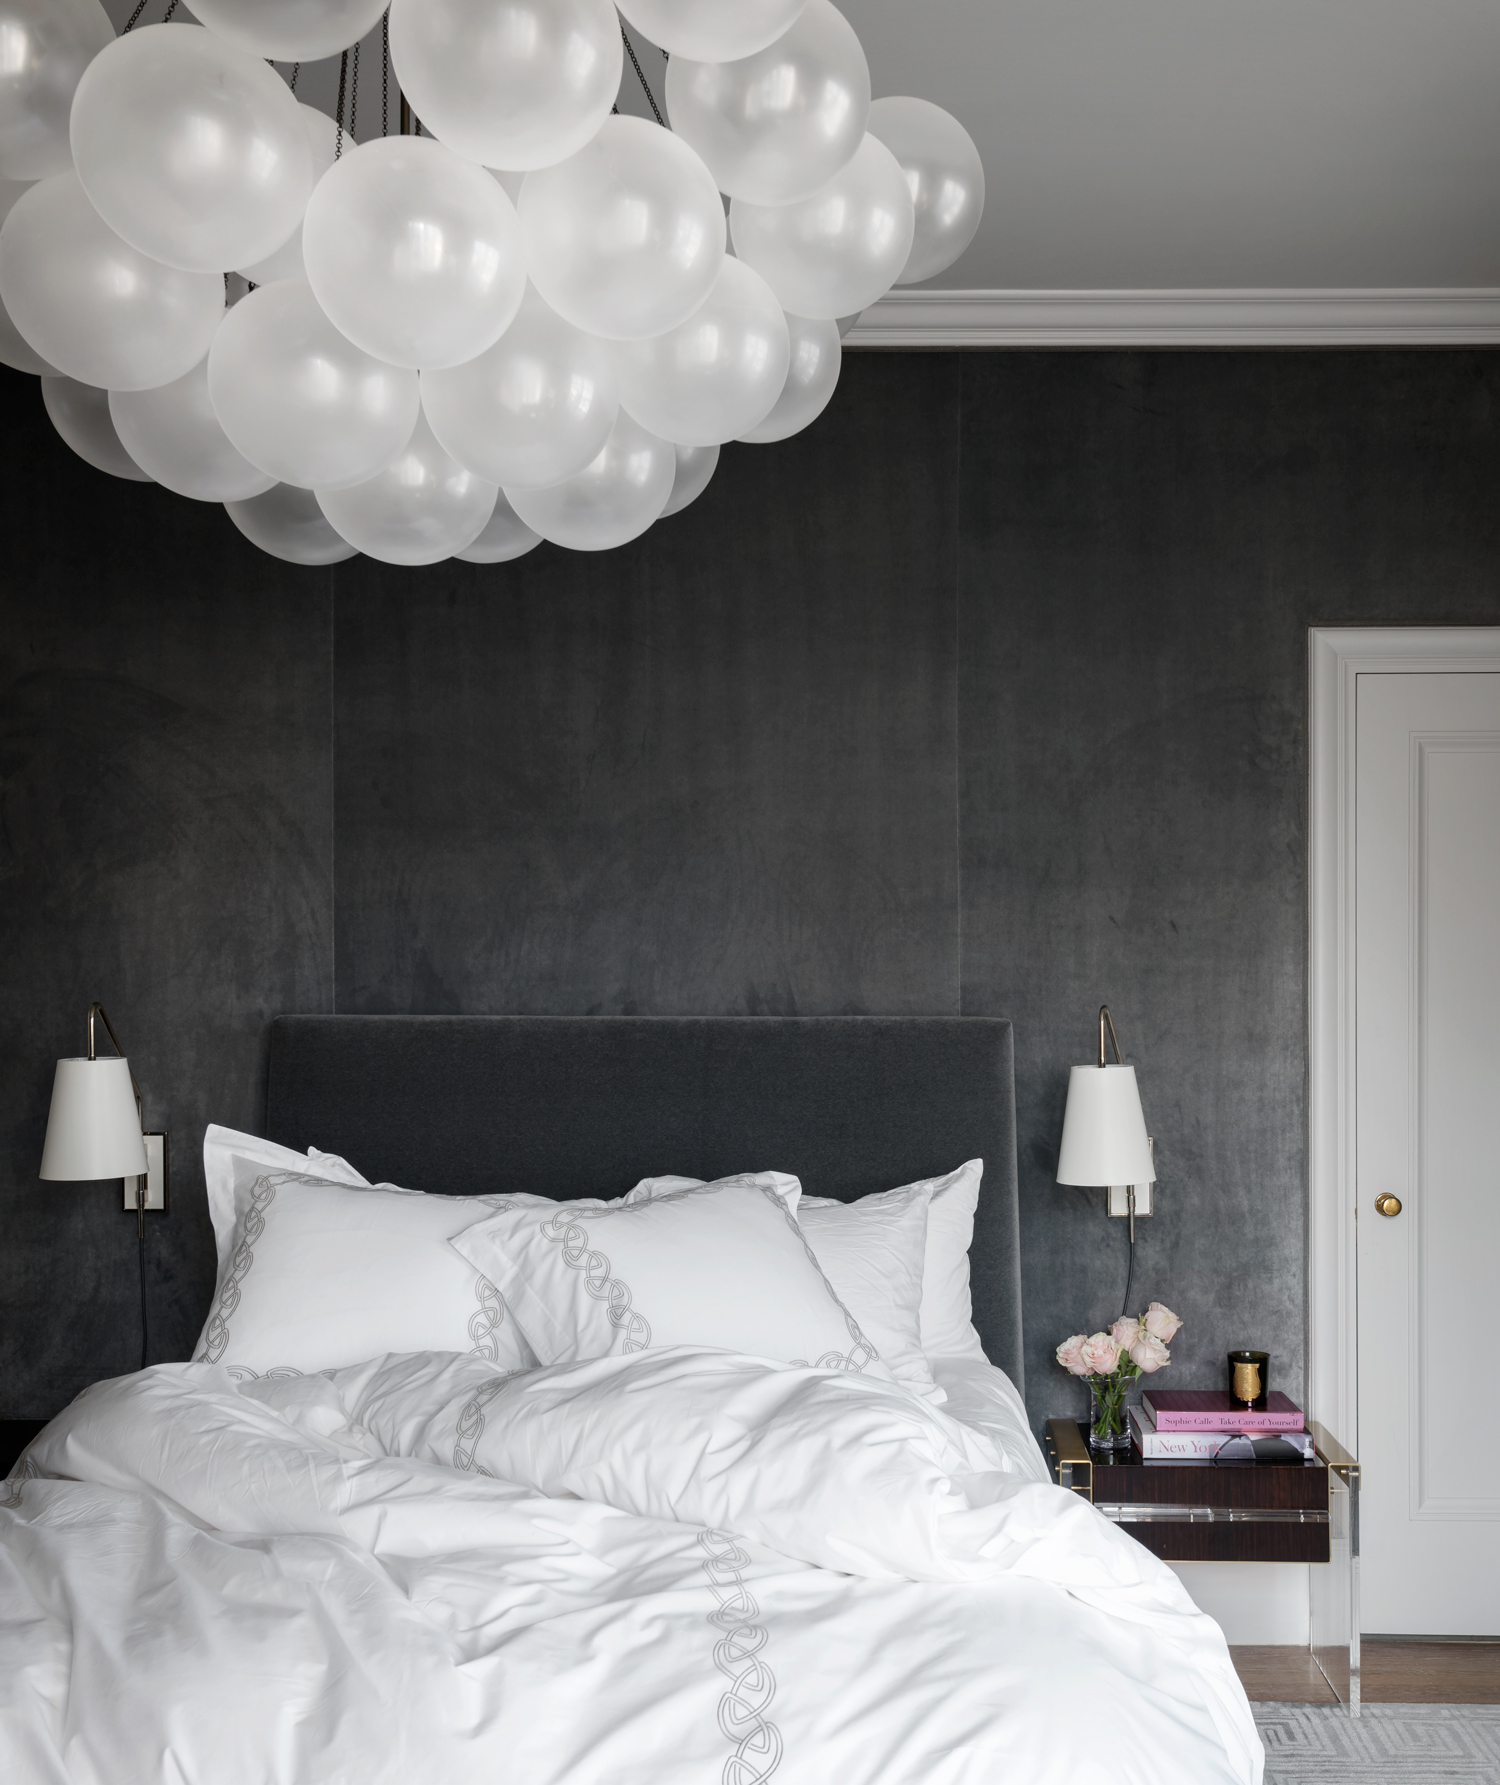 Dark Bedroom Ideas: Moody Dark and Stormy Hues for Modern Bedrooms